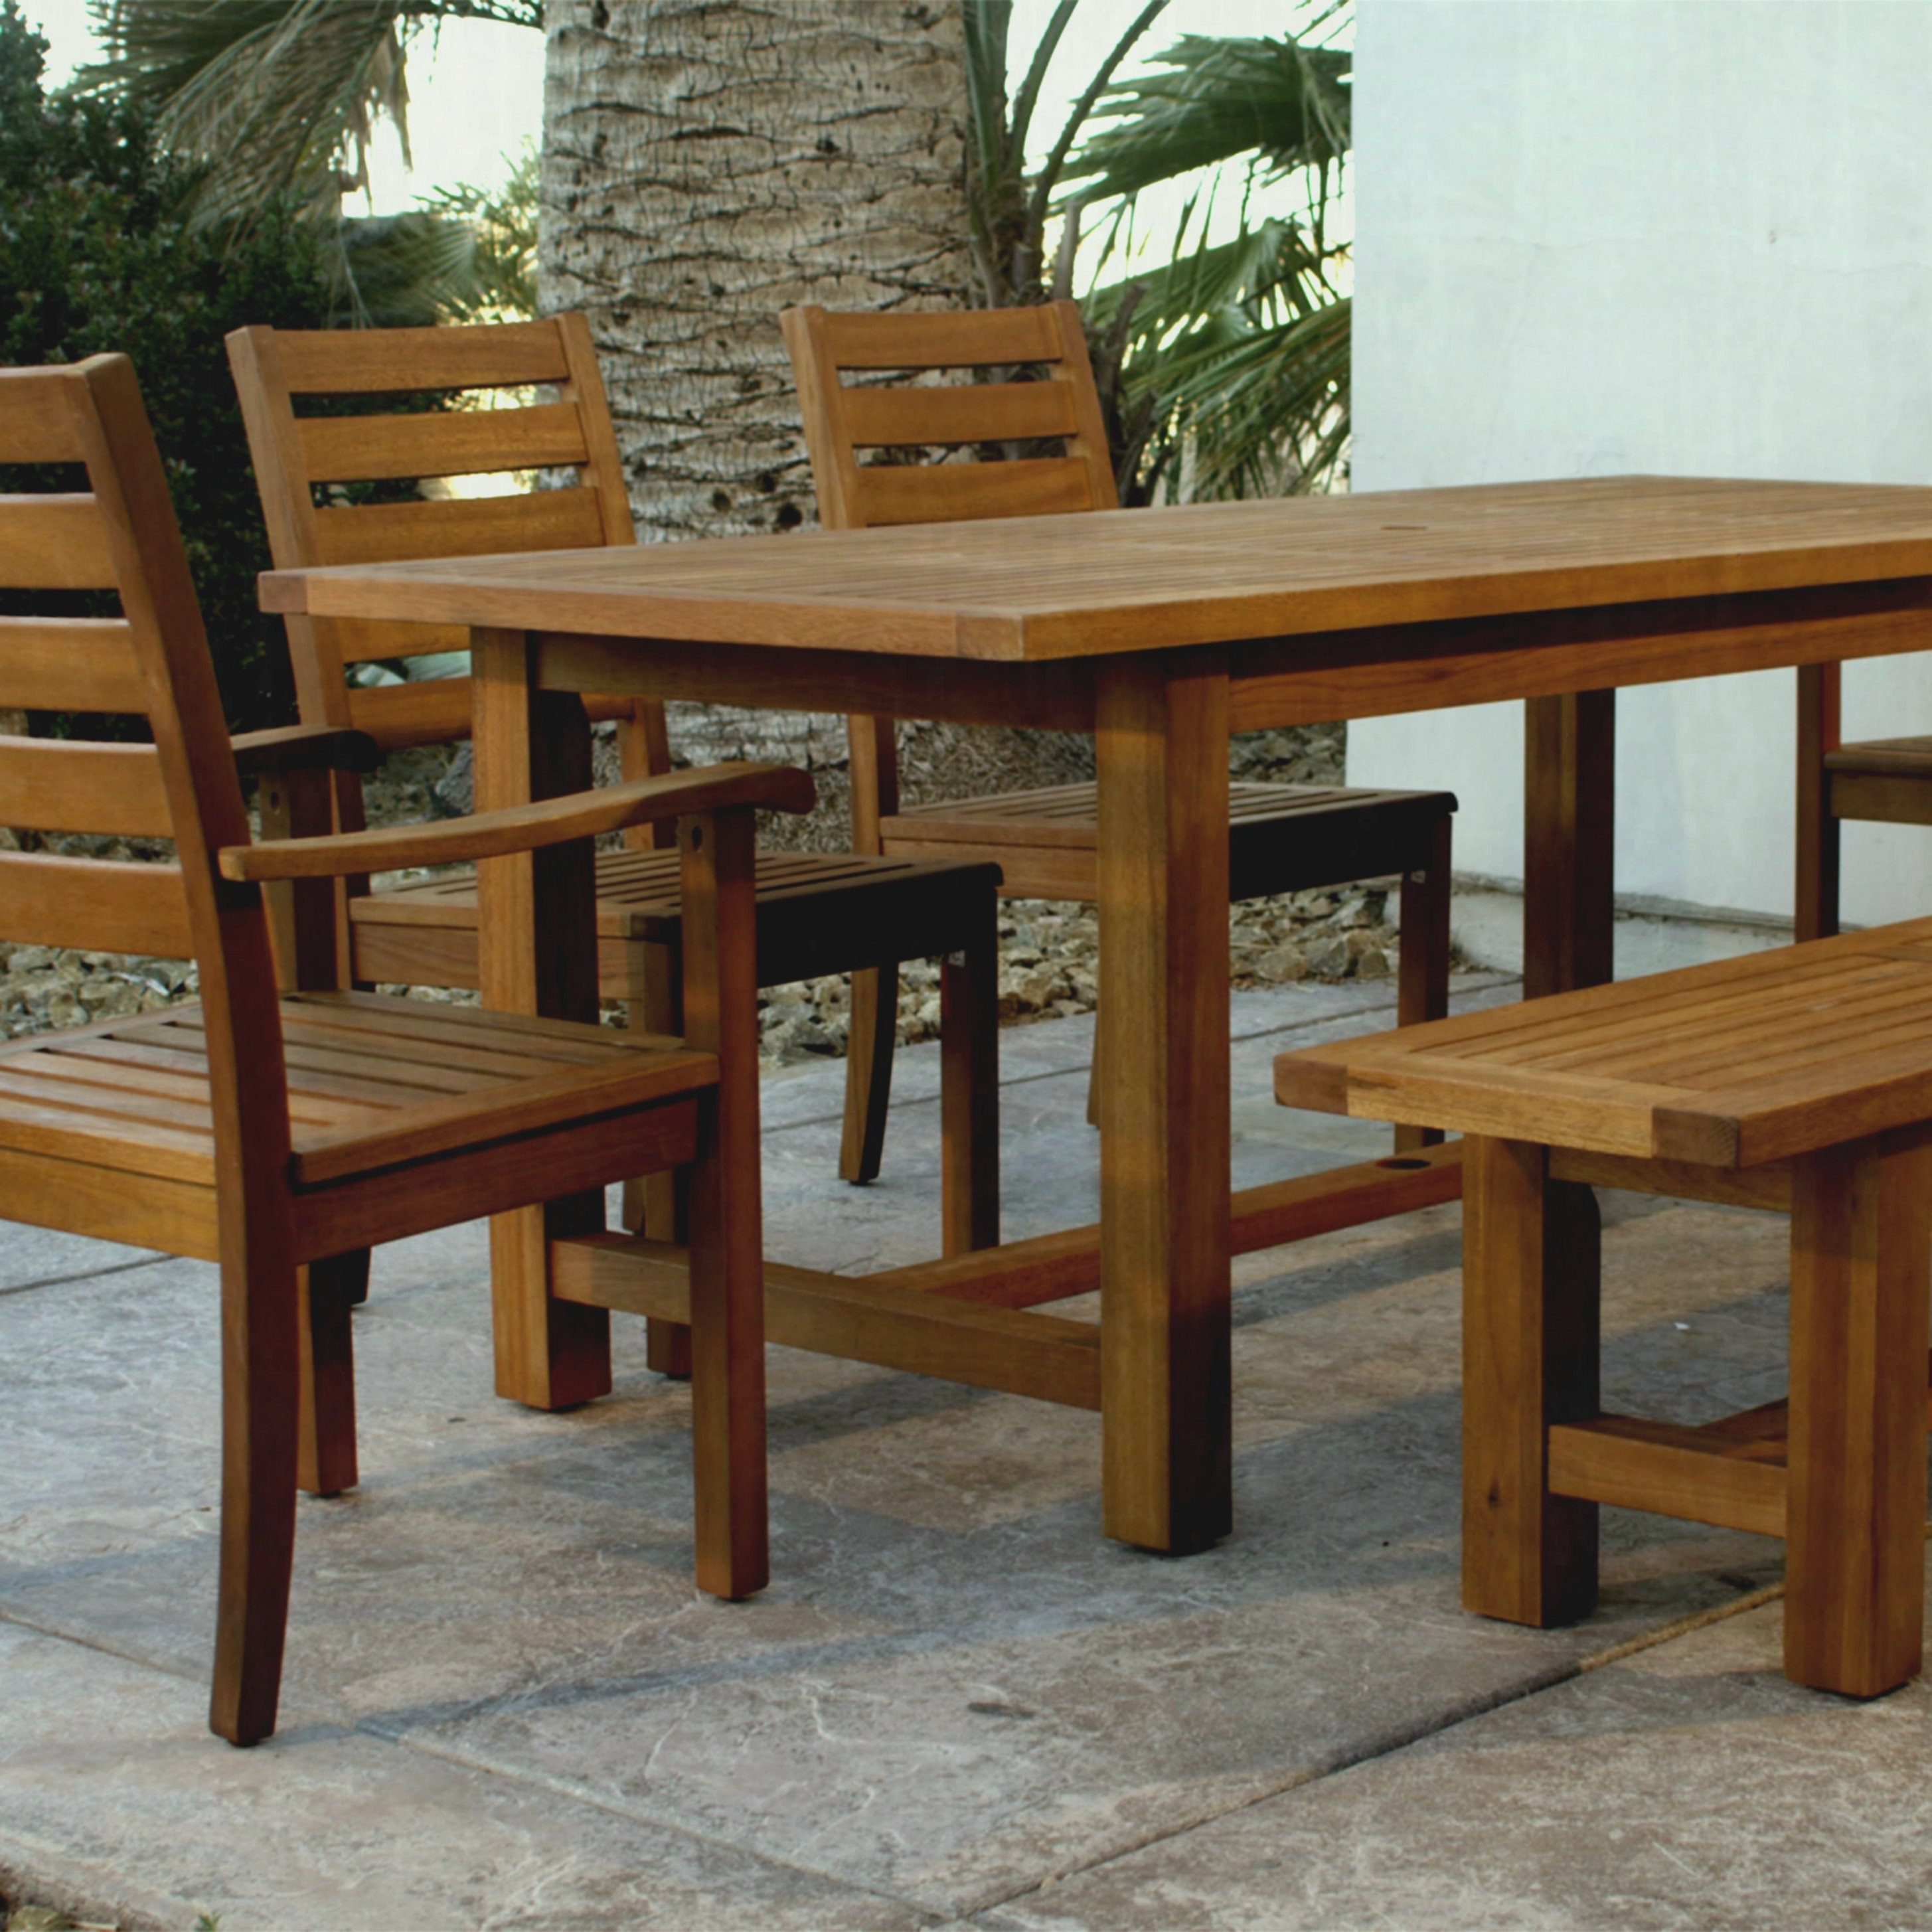 Thumb Img Wood Praiano Outdoor Dining Table World Market – Furniture For Most Current Market Dining Tables (Image 14 of 20)